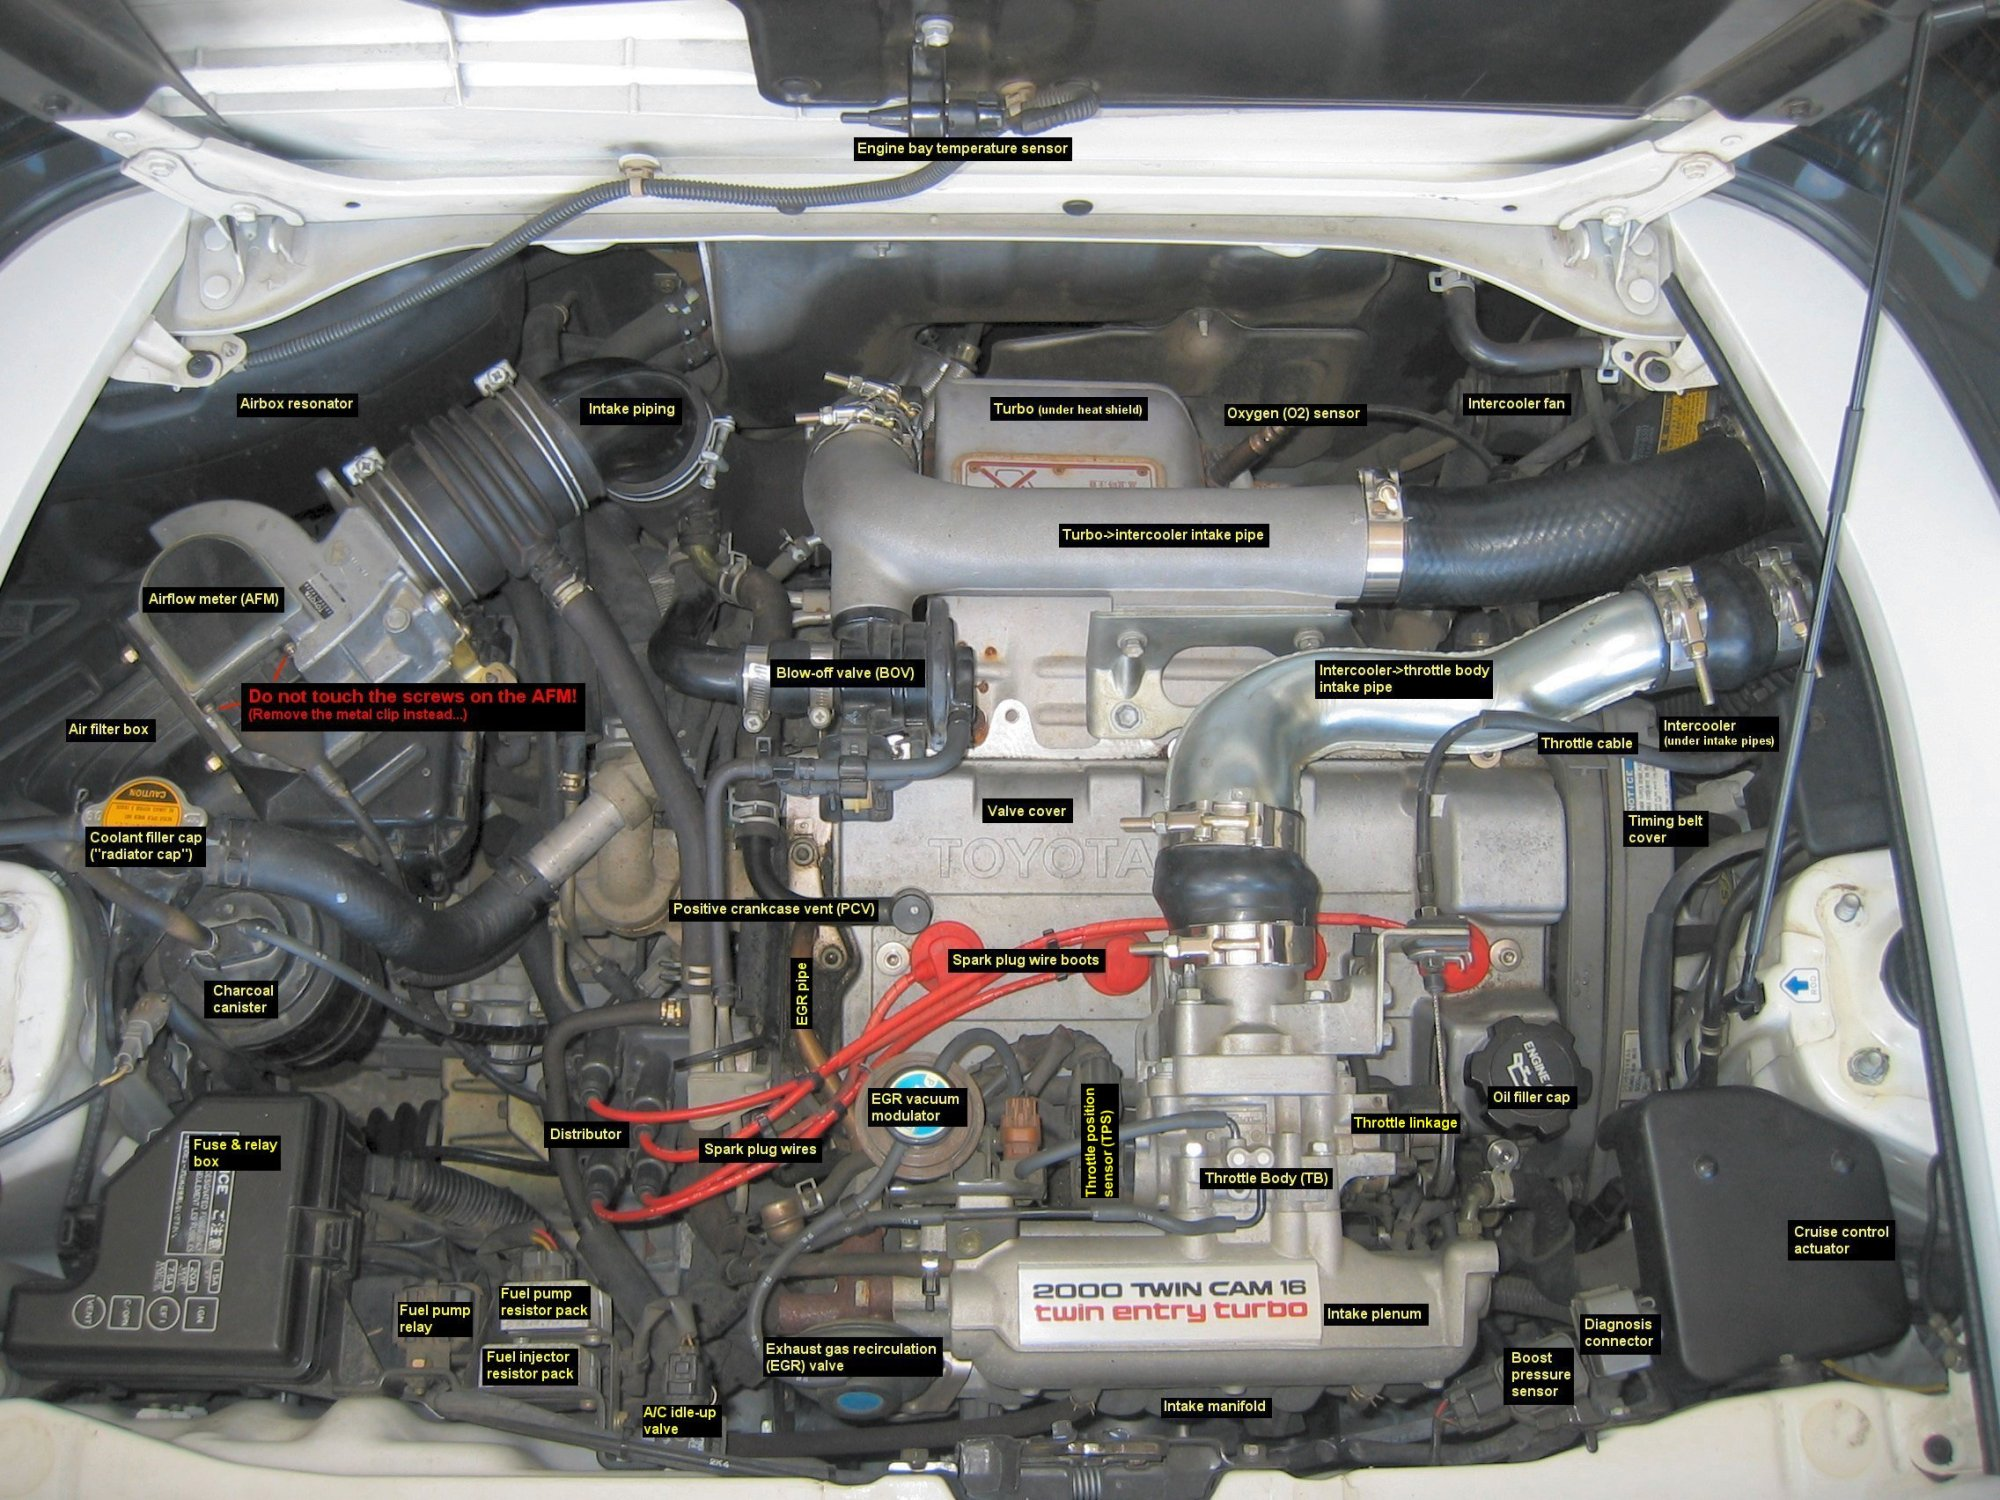 hight resolution of 1991 toyota mr2 engine diagram wiring diagrams toyota supra stock engine diagram